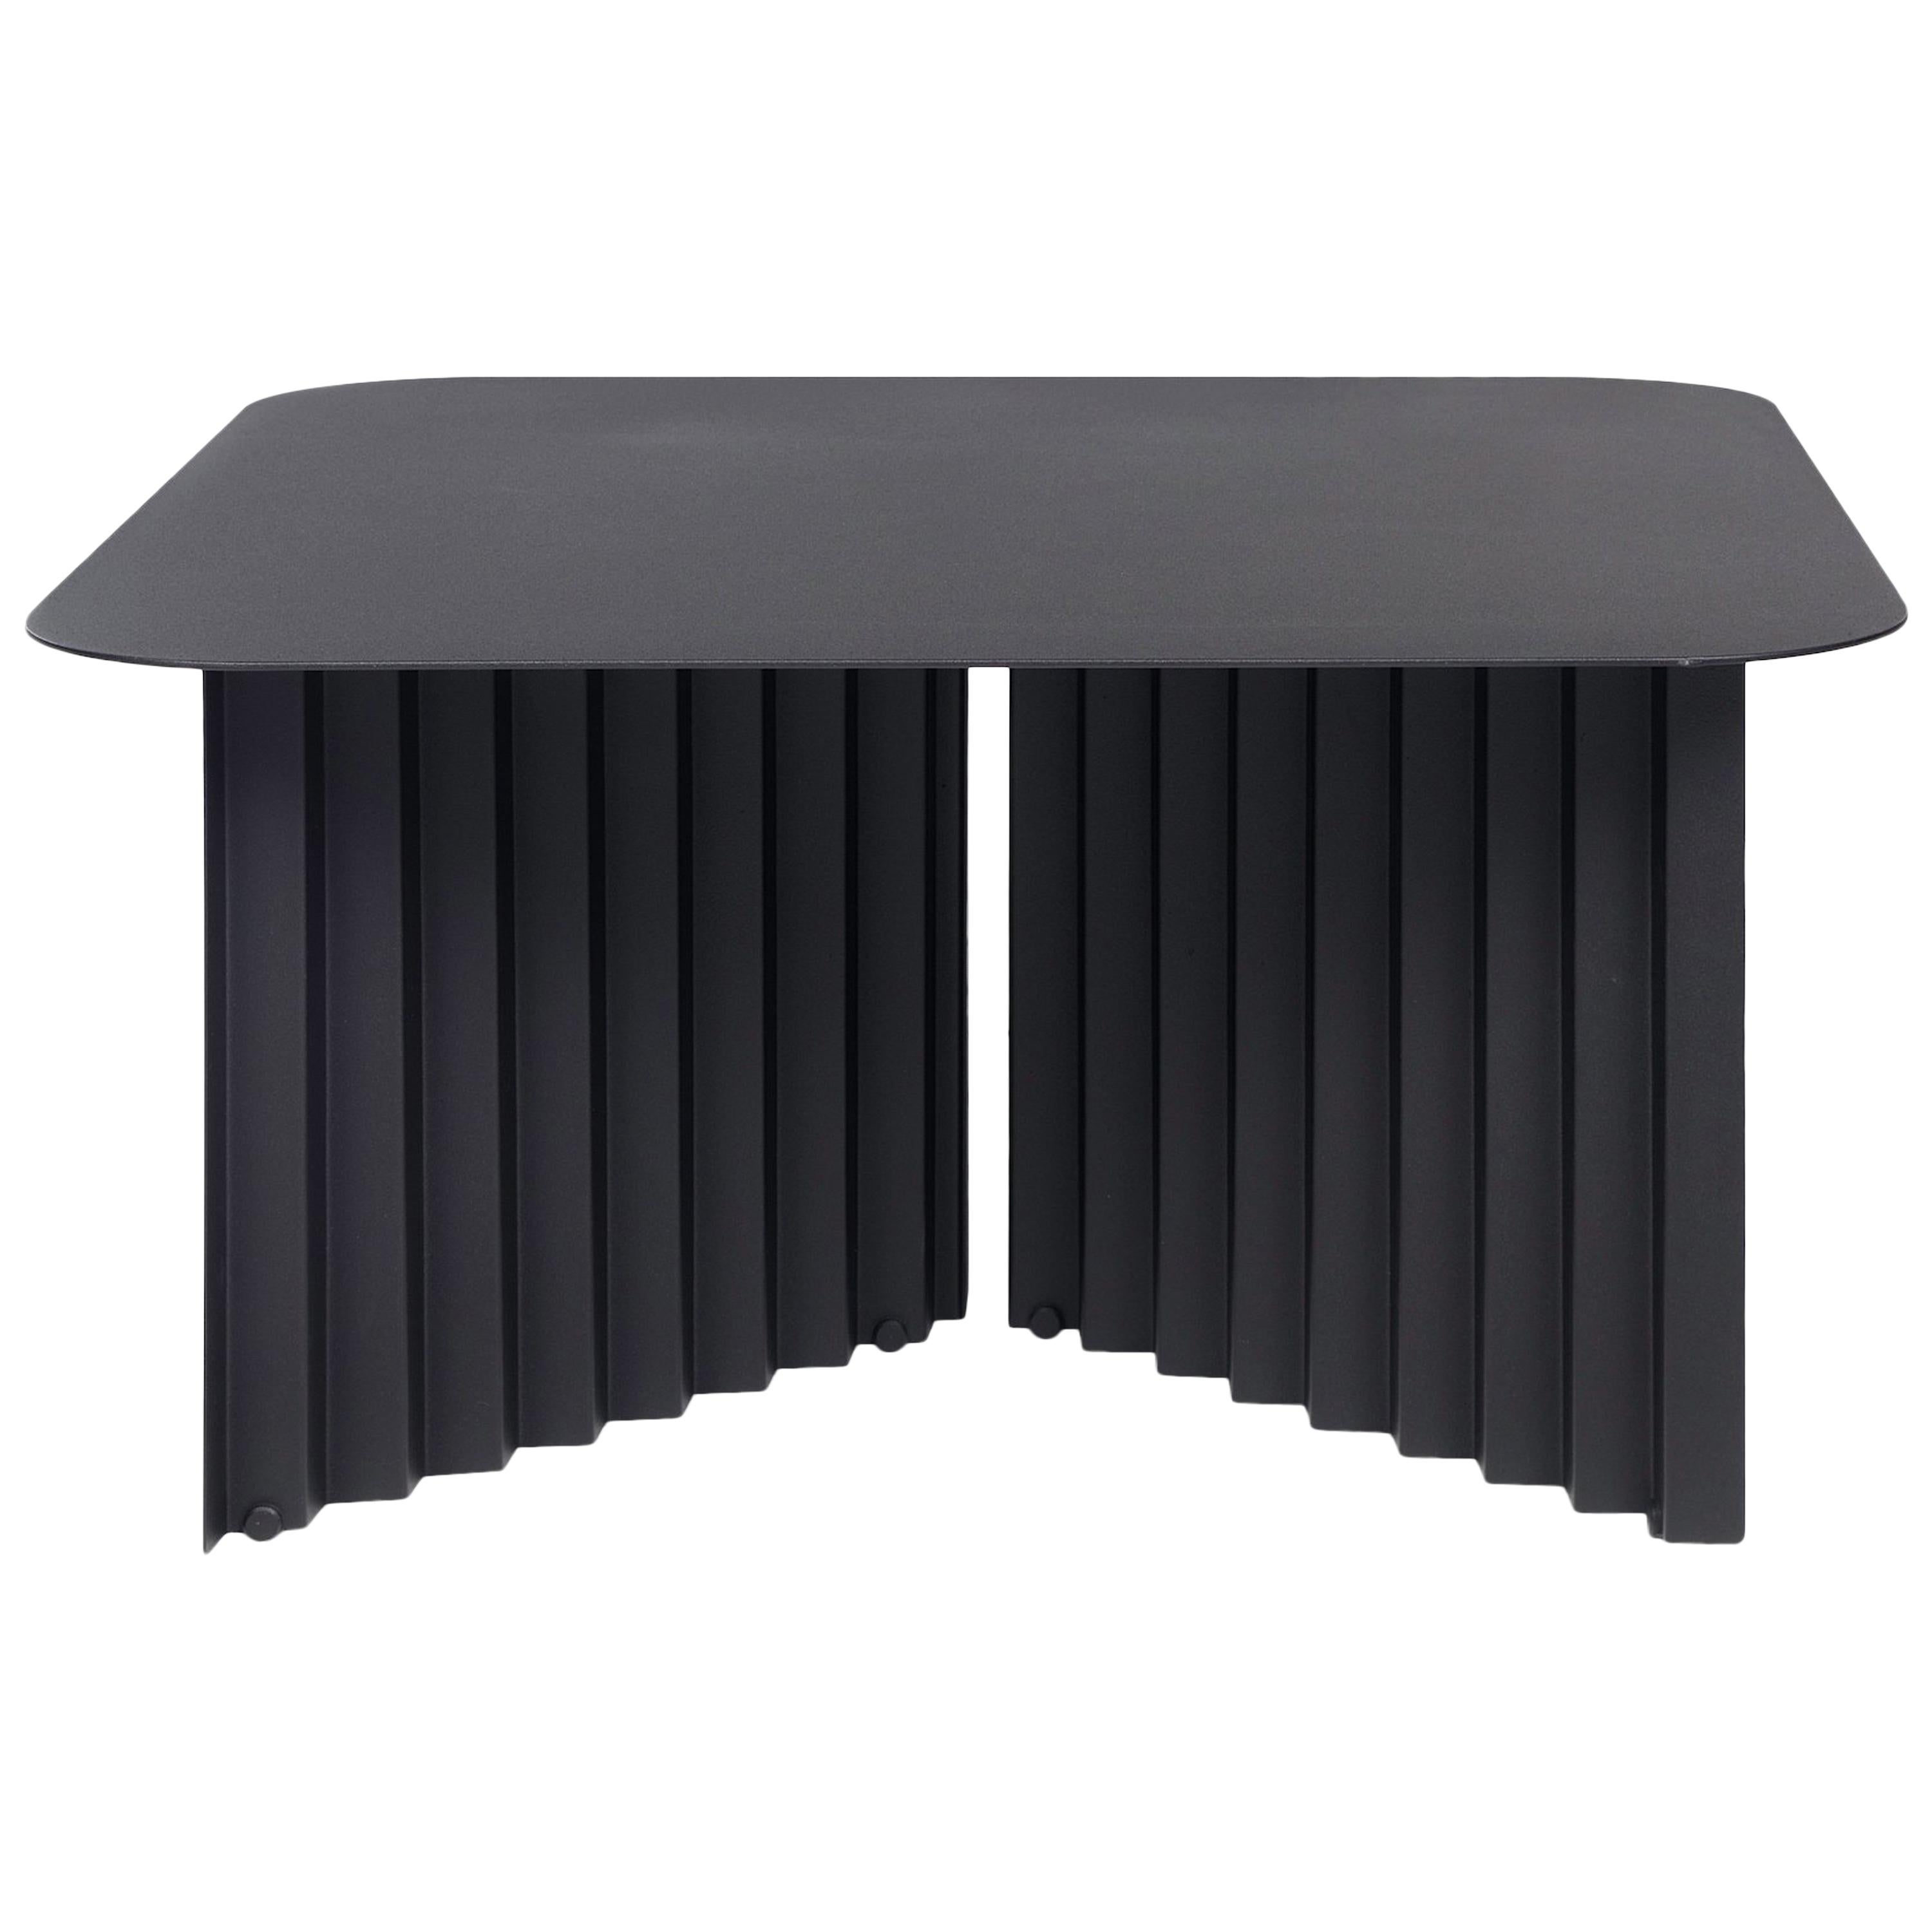 RS Barcelona Plec Medium Table in Black Metal by A.P.O.